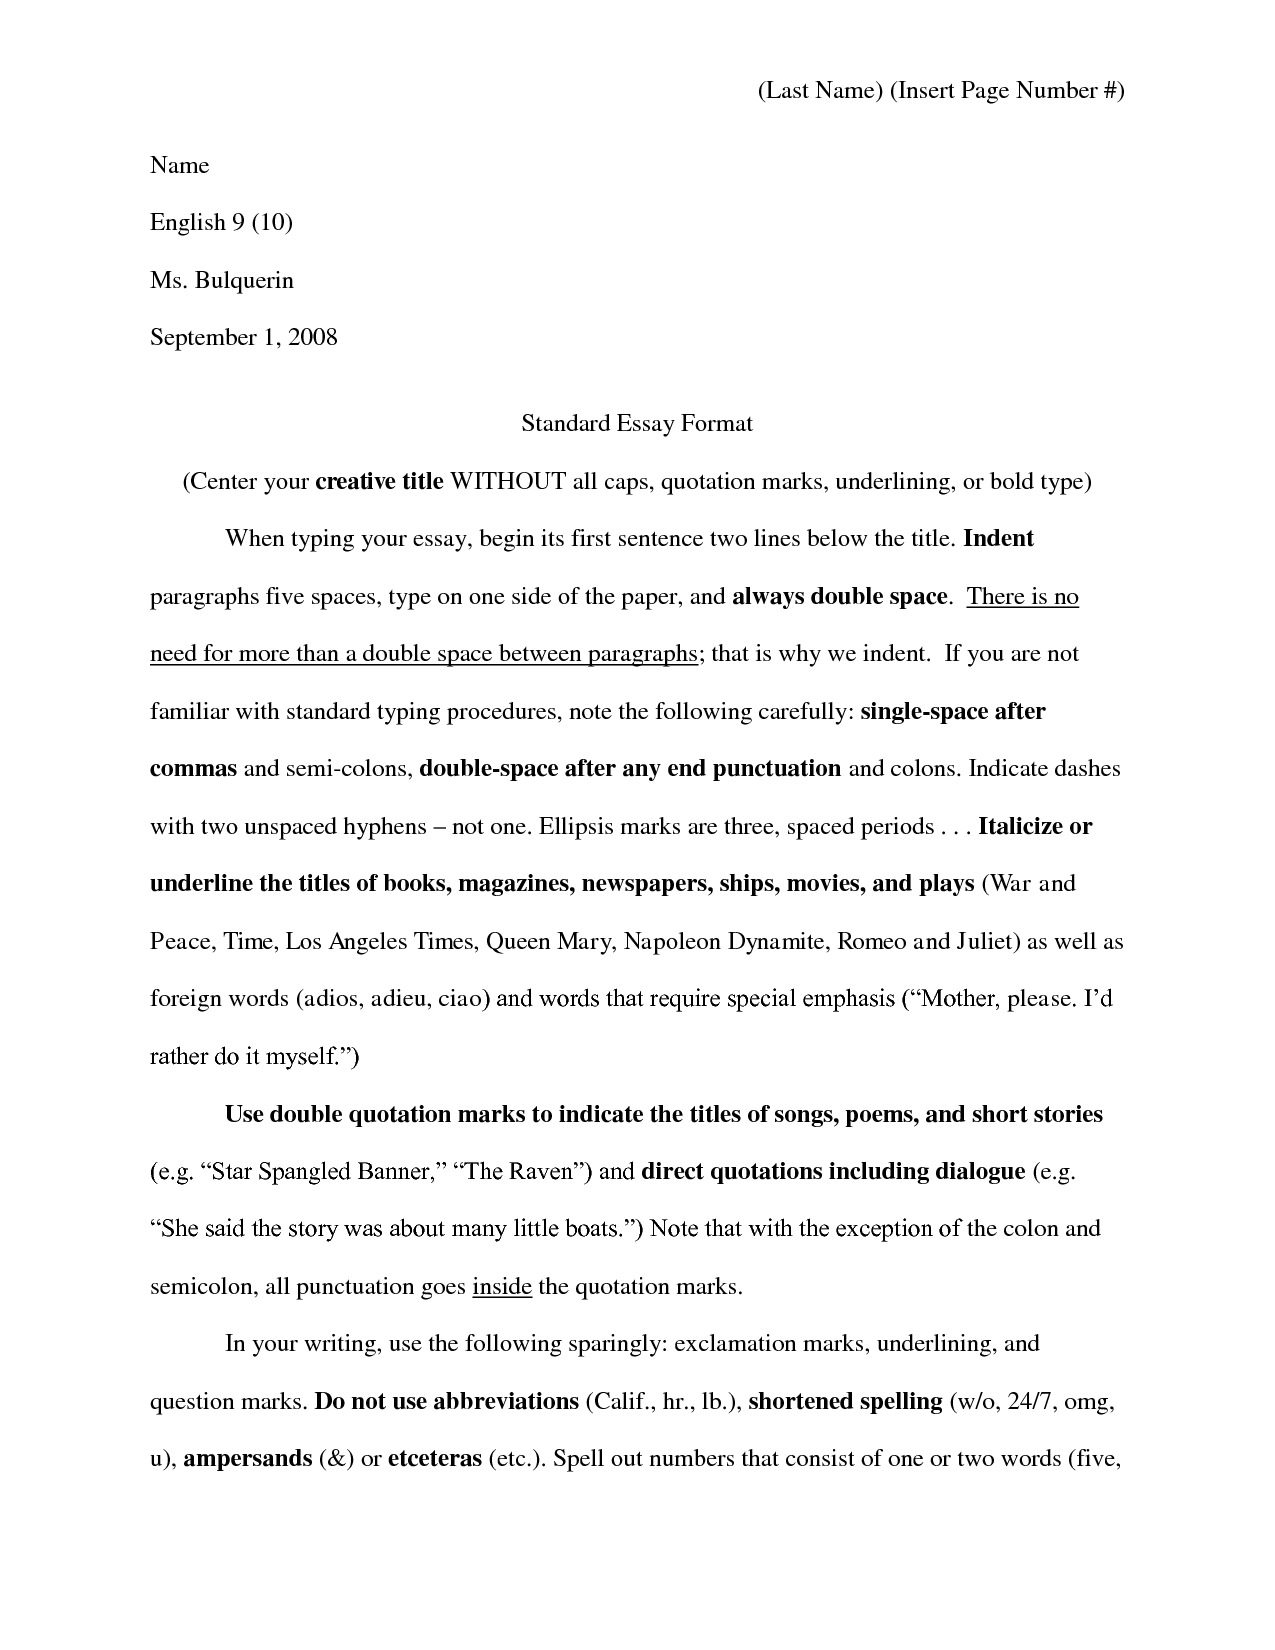 standard formal essay format Standard outline format purpose: the purpose of an outline is to identify the most important ideas in one or more chapters of a textbook and organize them according to their importance roman numerals are used to identify the biggest and most important ideas.